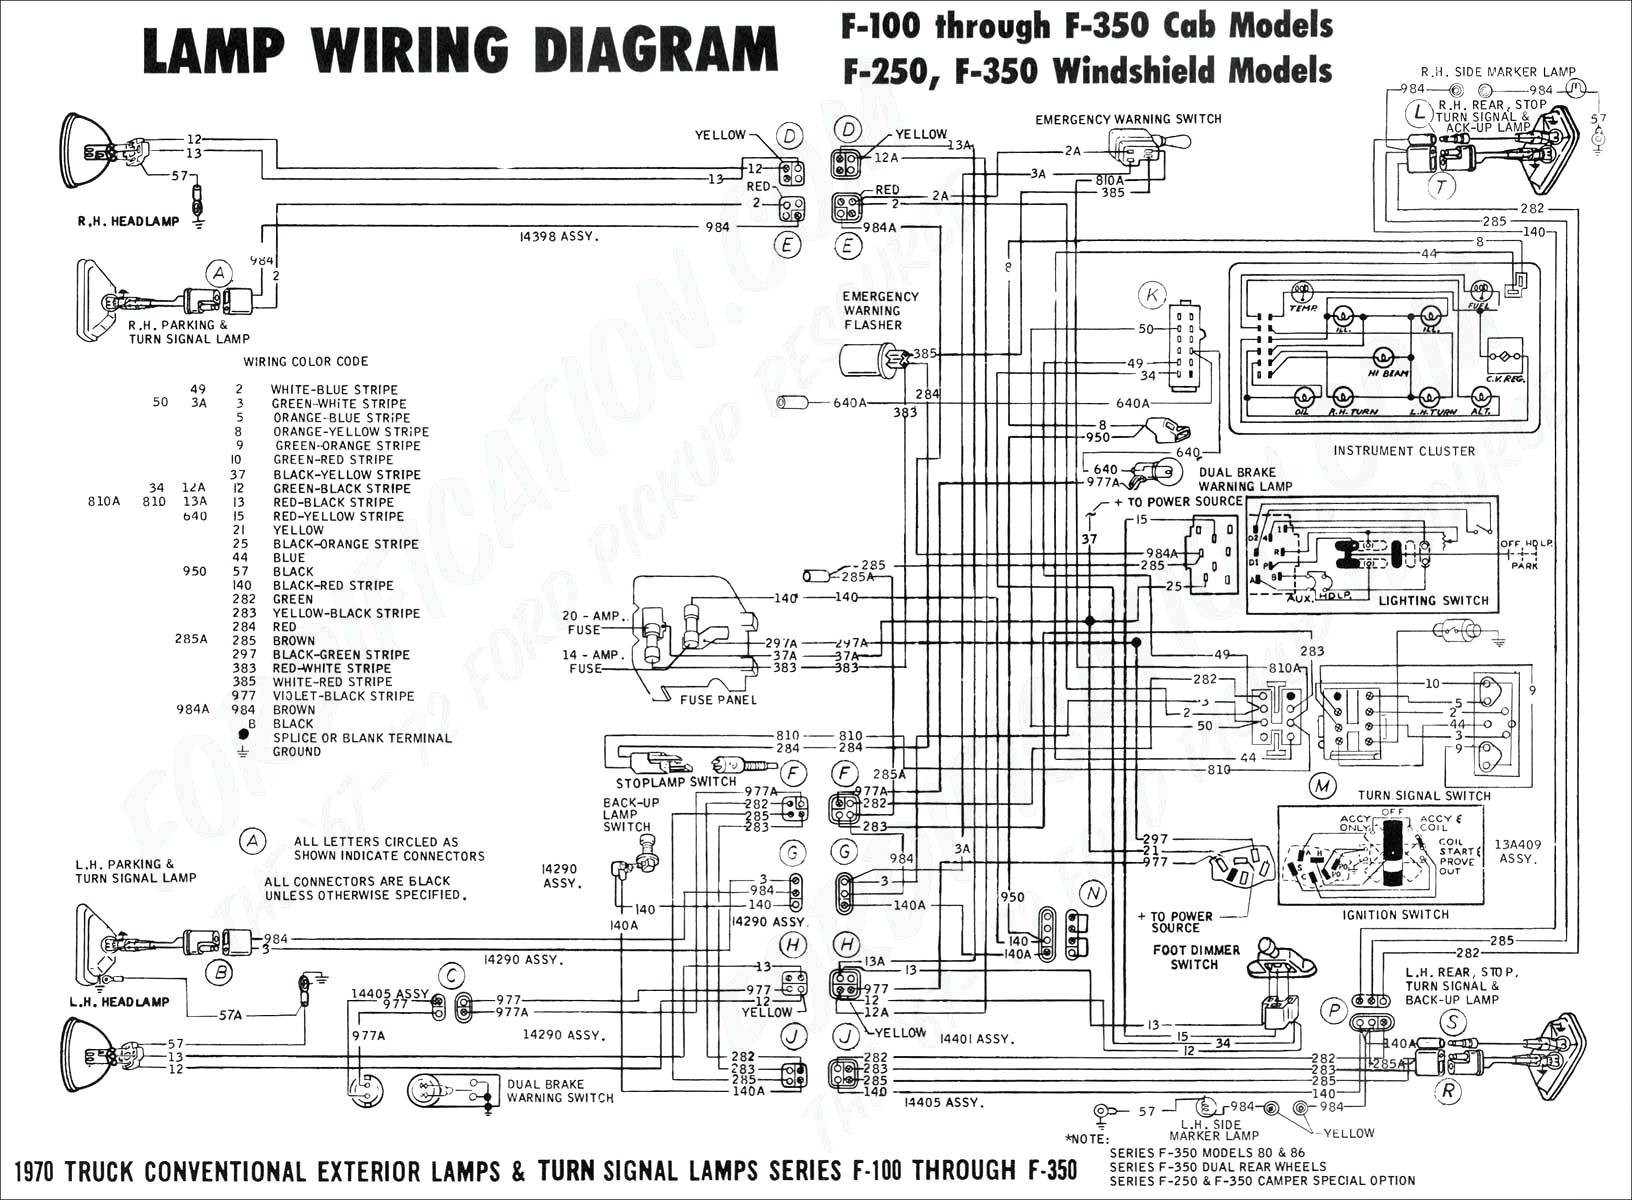 2004 Gmc Sierra Wiring Diagram 2005 Gmc Sierra 2500hd Wiring Diagram Wiring Diagram toolbox Of 2004 Gmc Sierra Wiring Diagram